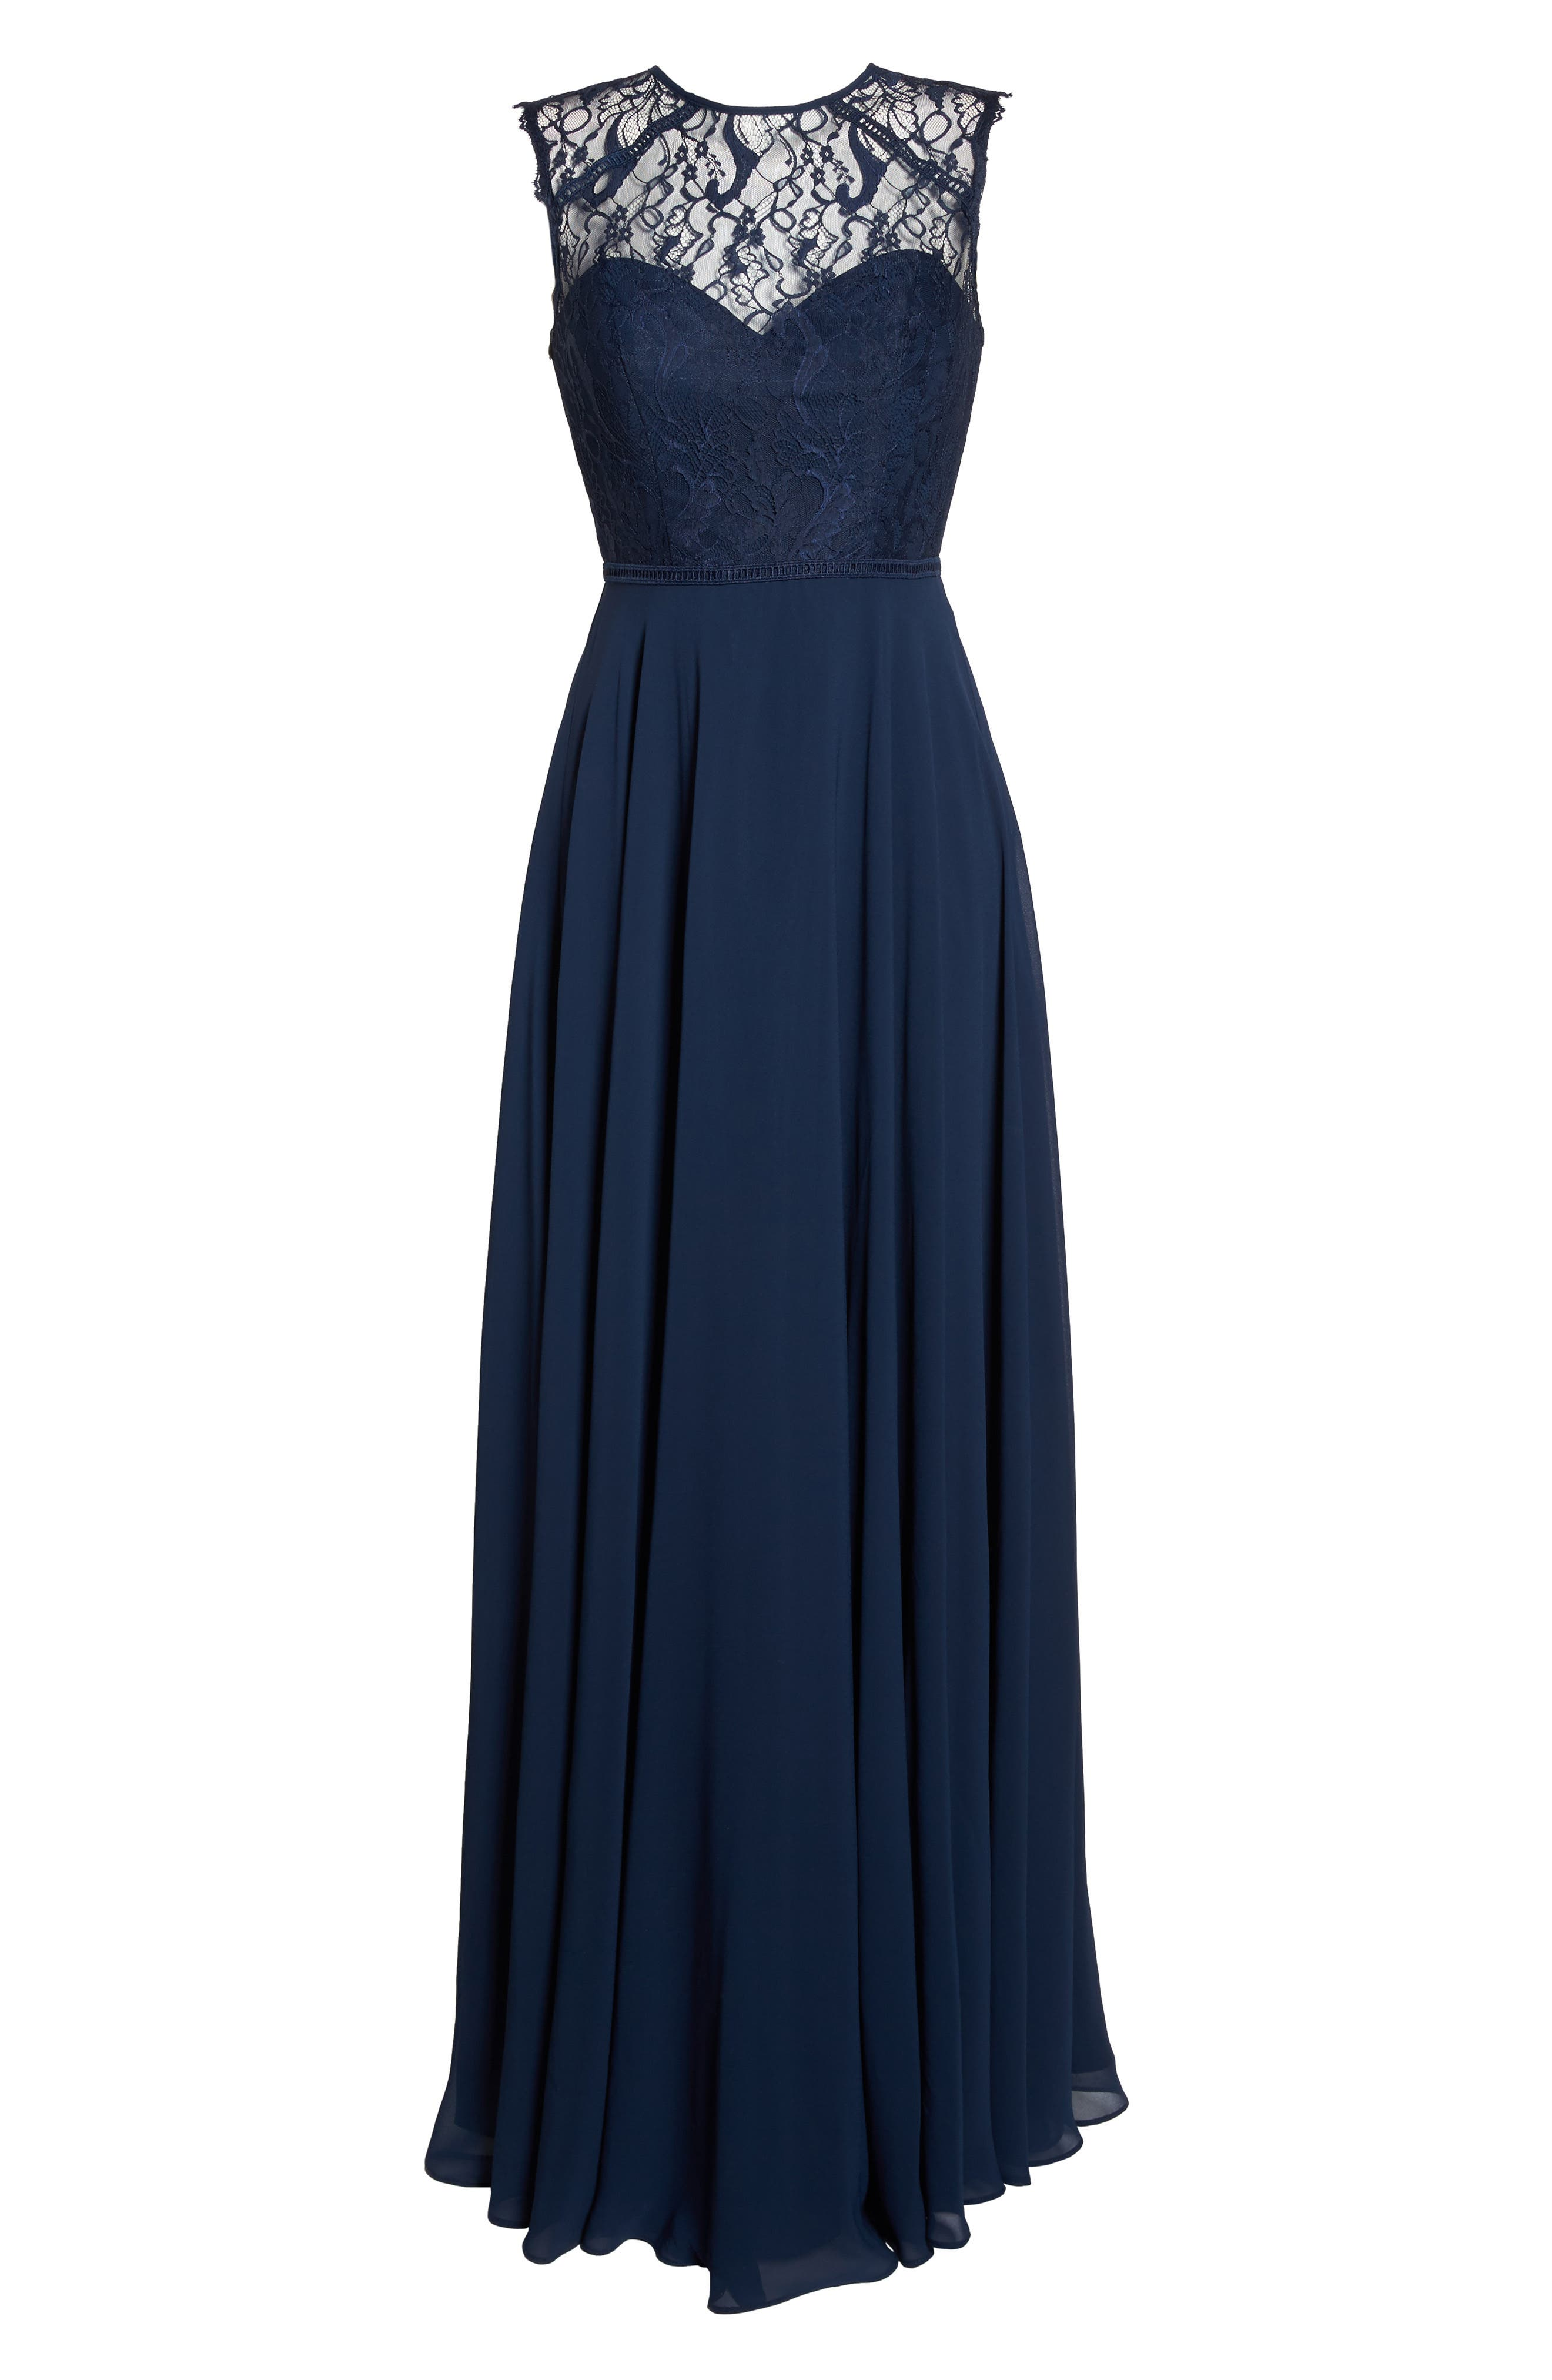 HAYLEY PAIGE OCCASIONS, Lace & Chiffon Gown, Alternate thumbnail 7, color, NAVY